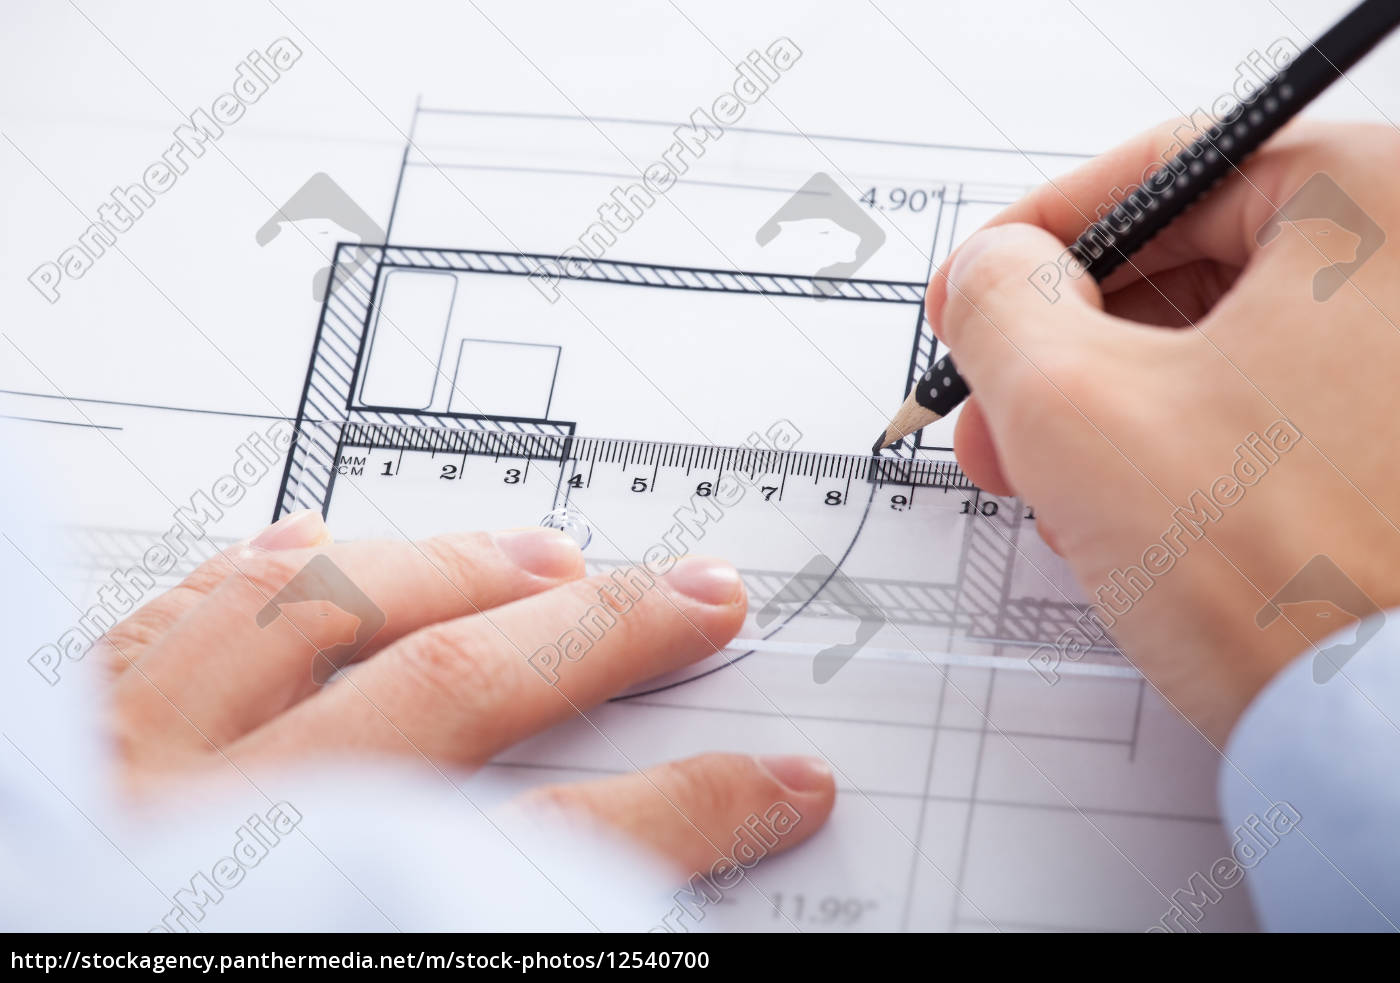 architect's, hands, using, pencil, and, ruler - 12540700